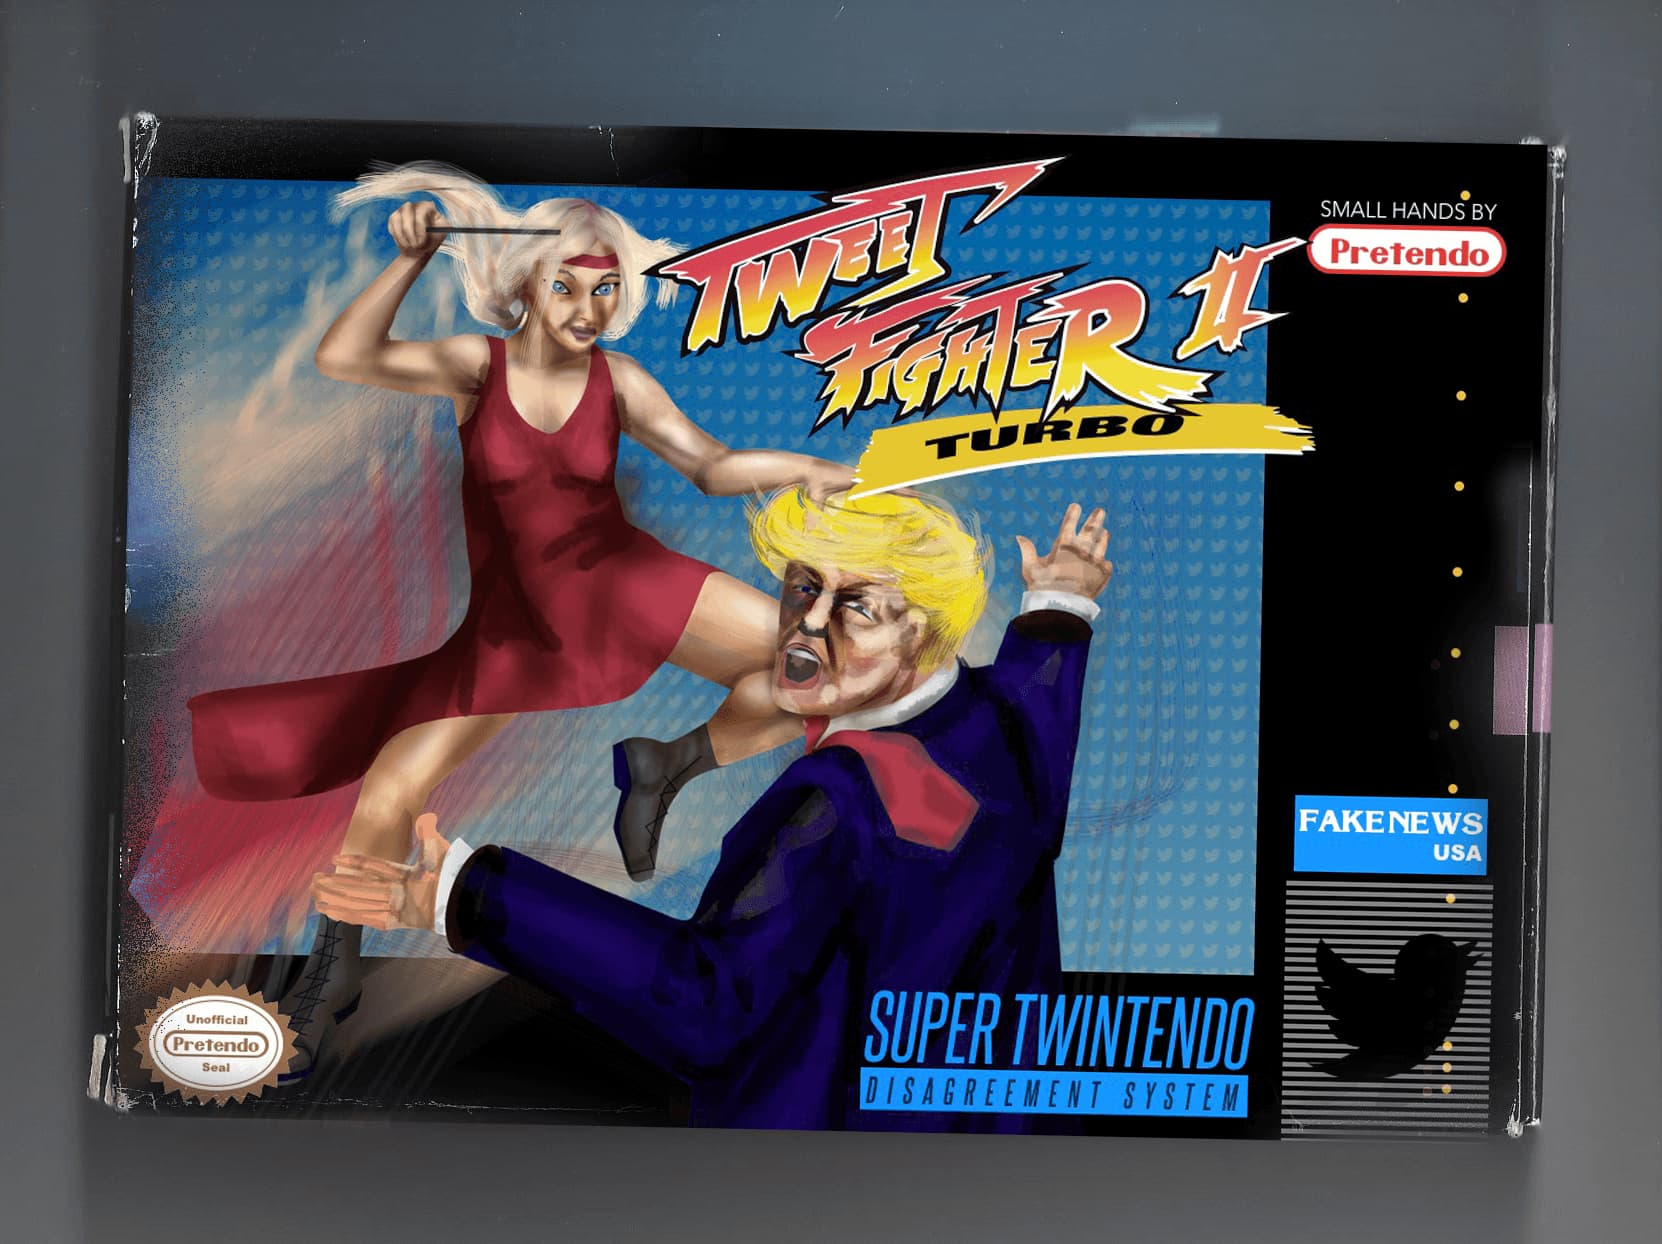 What if popular websites were retro video games?